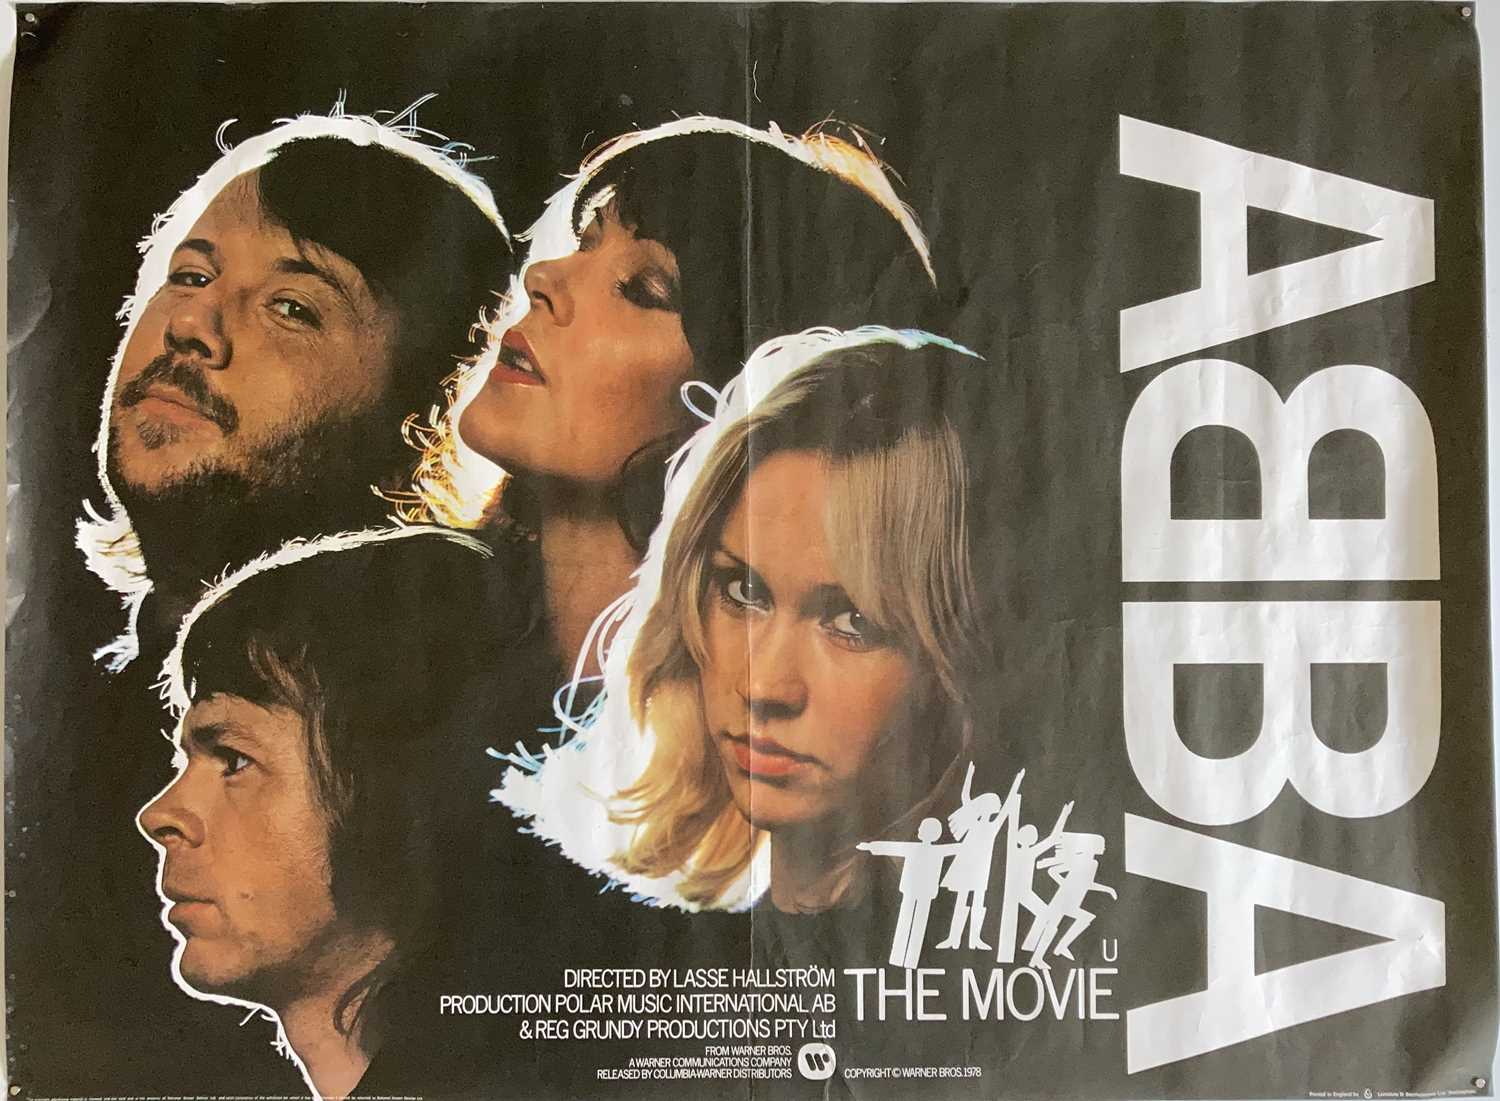 Lot 27 - ABBA FILM POSTER.